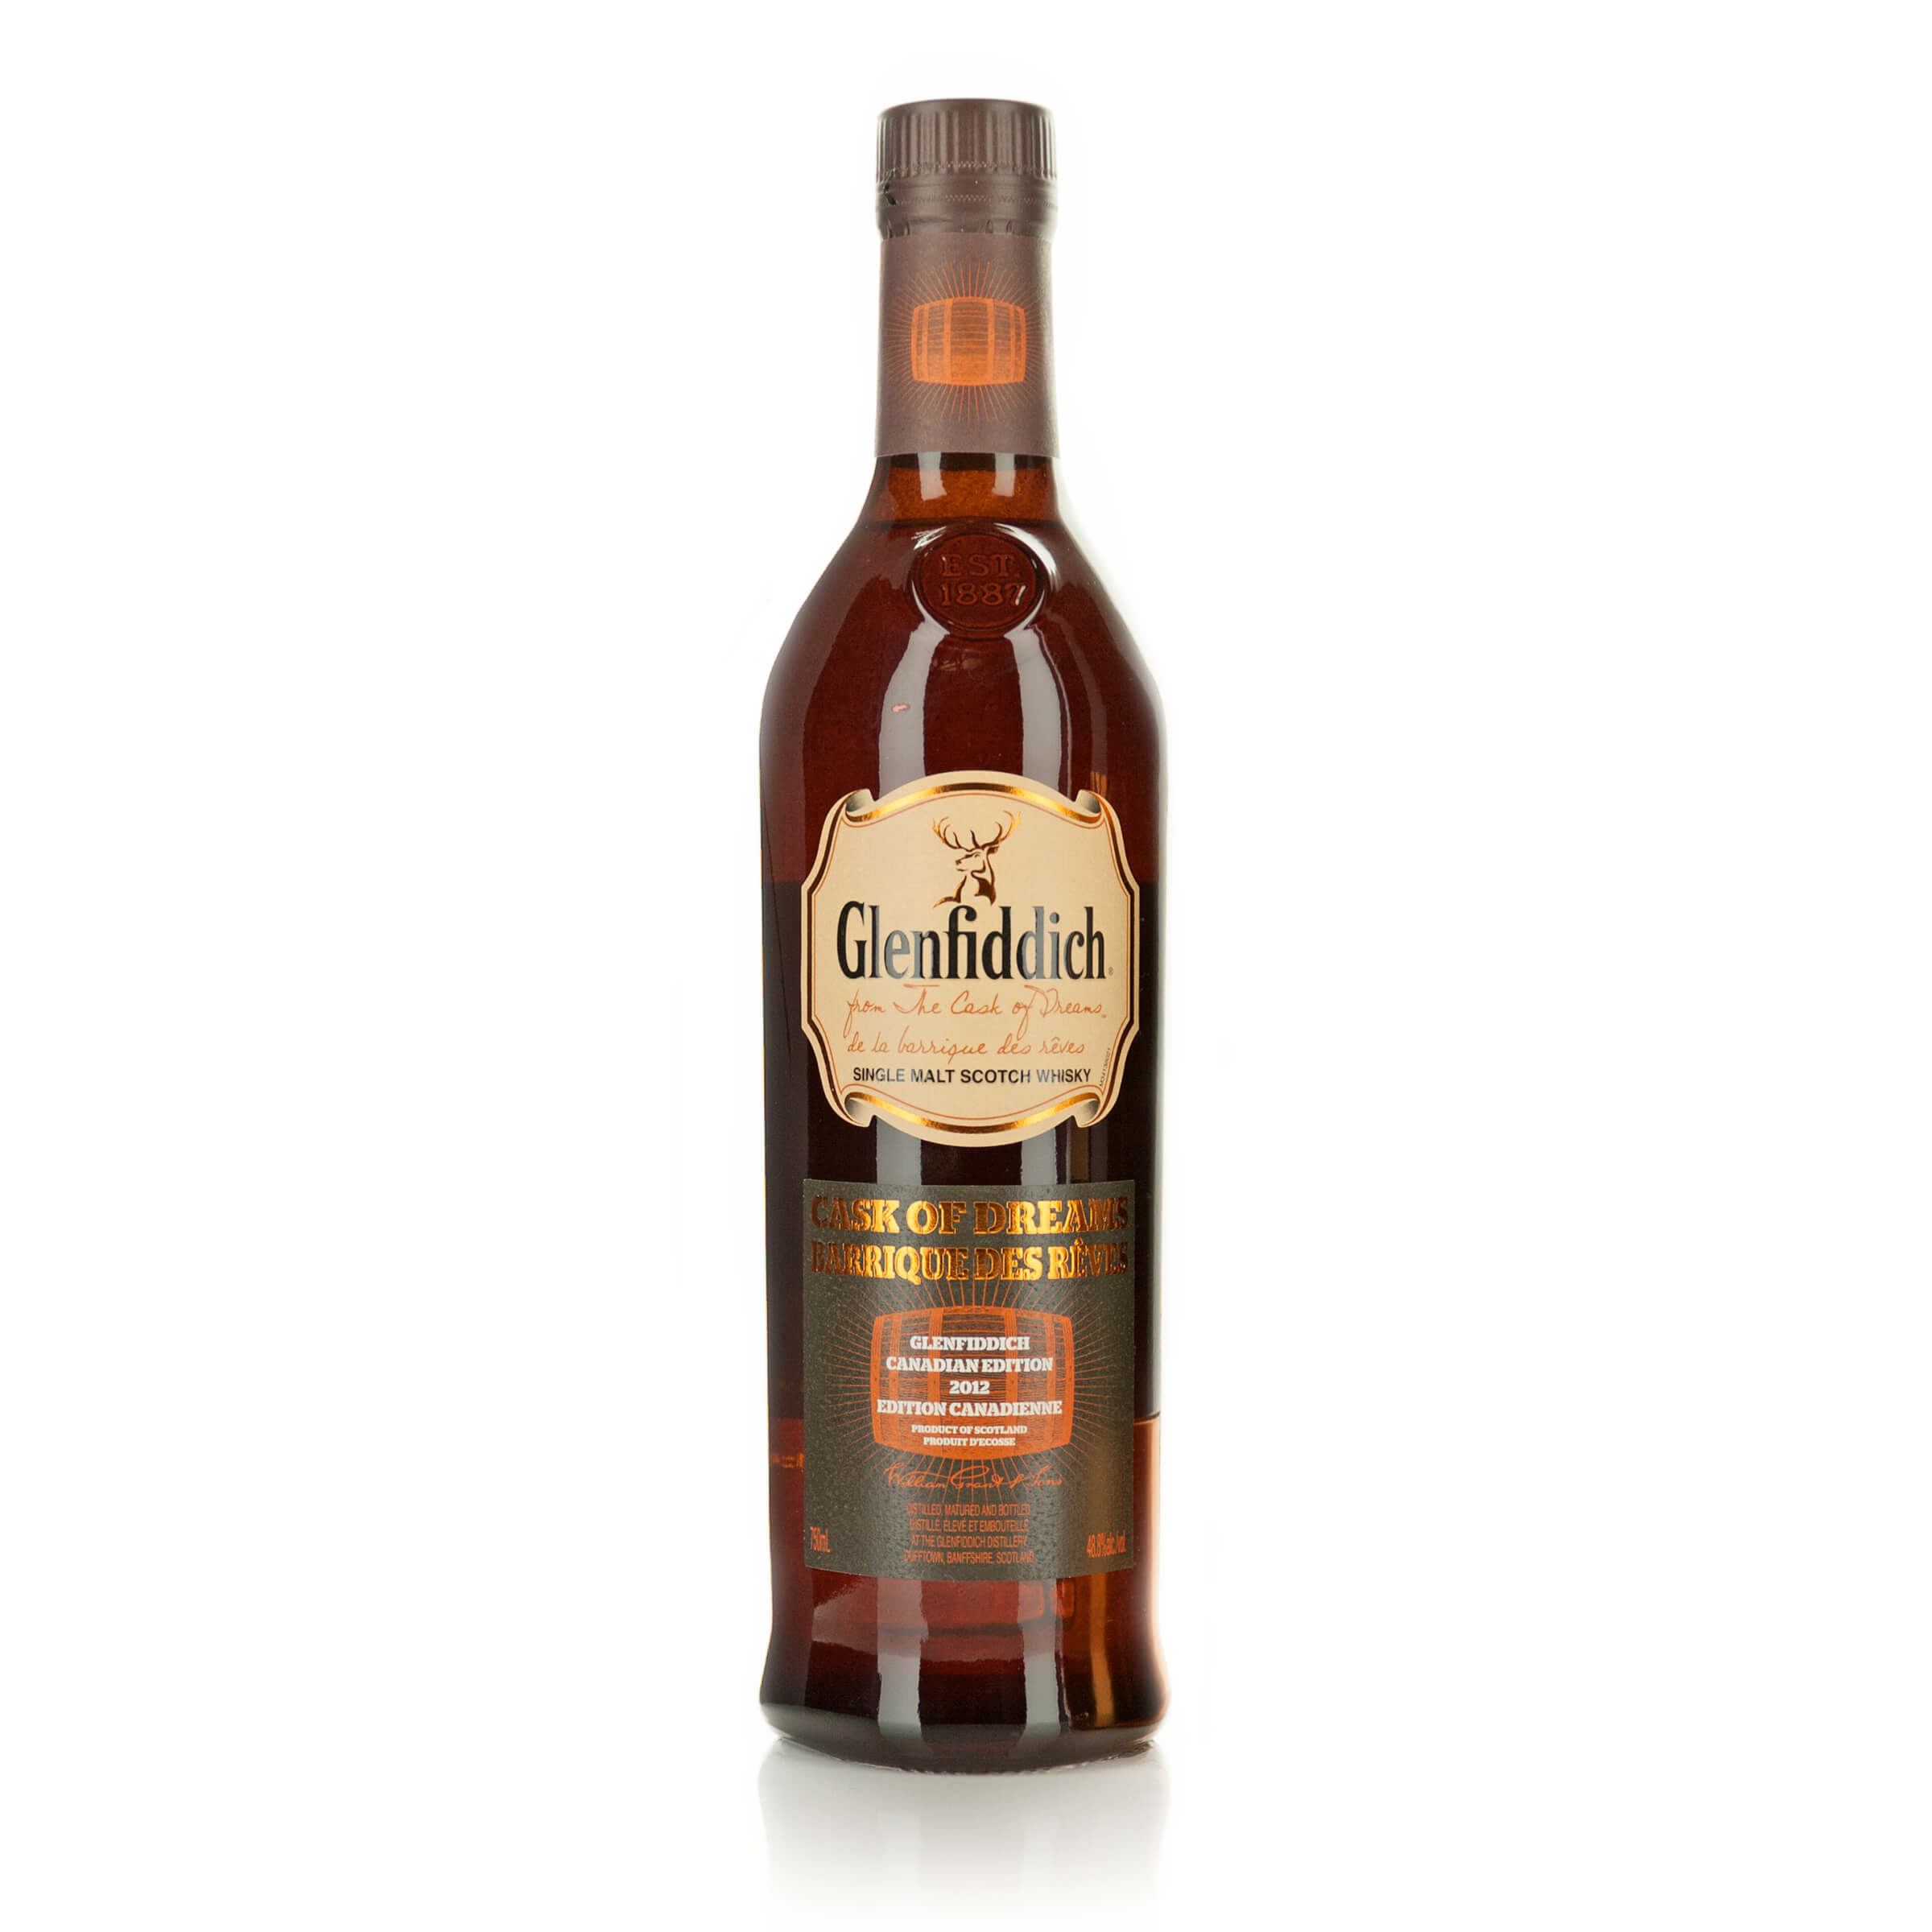 GLENFIDDICH SINGLE MALT SCOTCH WHISKY (NAS) (ONE 750 ML)